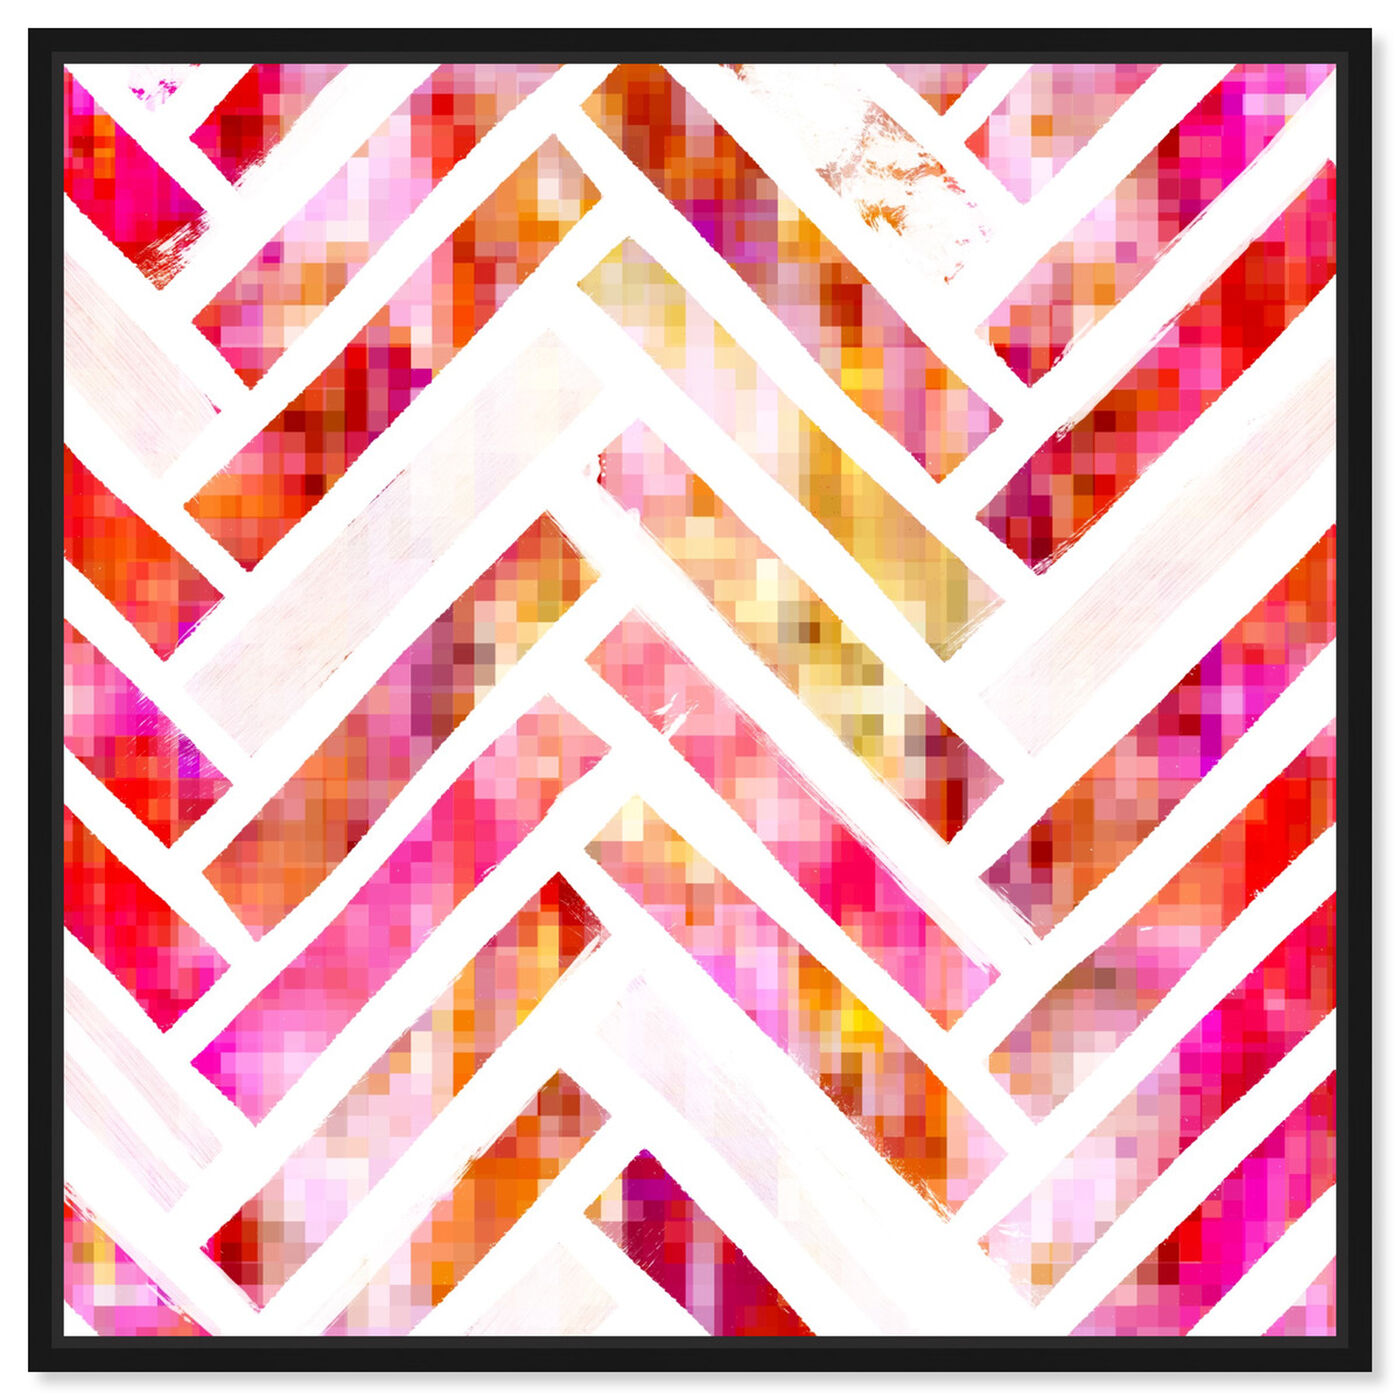 Front view of Sugar Flake Herringbone featuring abstract and patterns art.